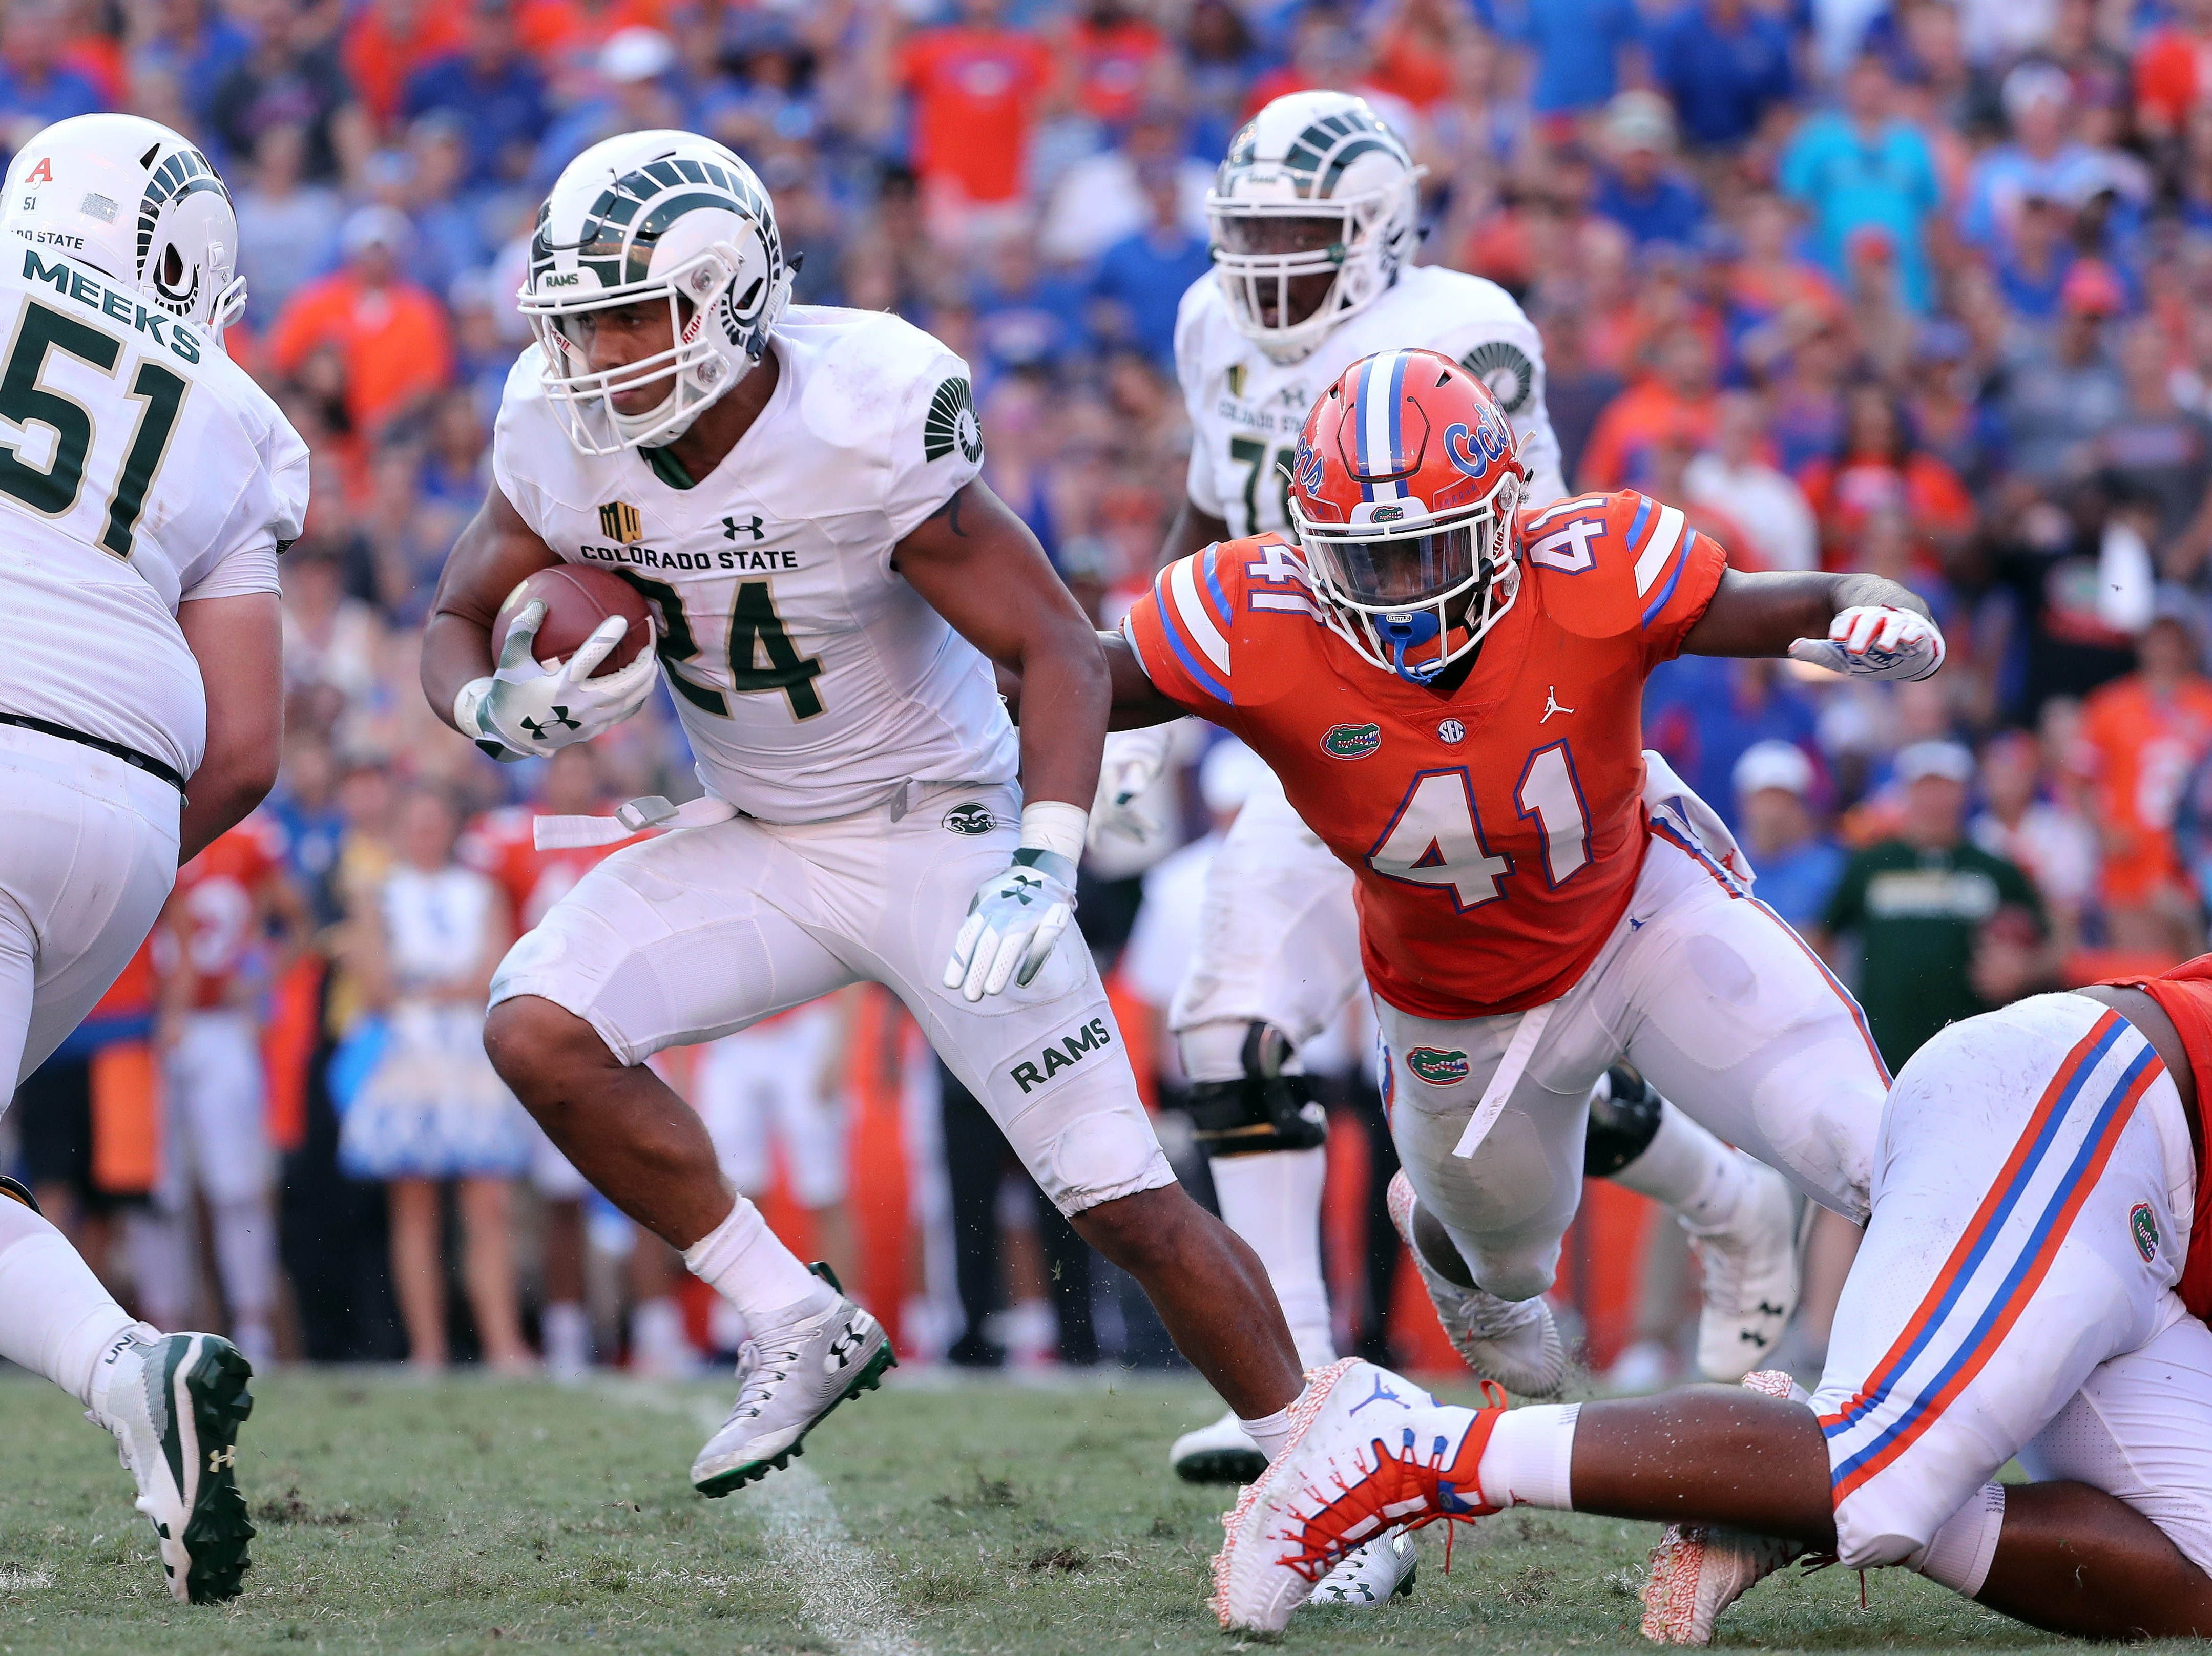 Sep 15, 2018; Gainesville, FL, USA; Colorado State Rams running back Izzy Matthews (24) runs with the ball against Florida Gators linebacker James Houston IV (41)  during the second half at Ben Hill Griffin Stadium. Mandatory Credit: Kim Klement-USA TODAY Sports